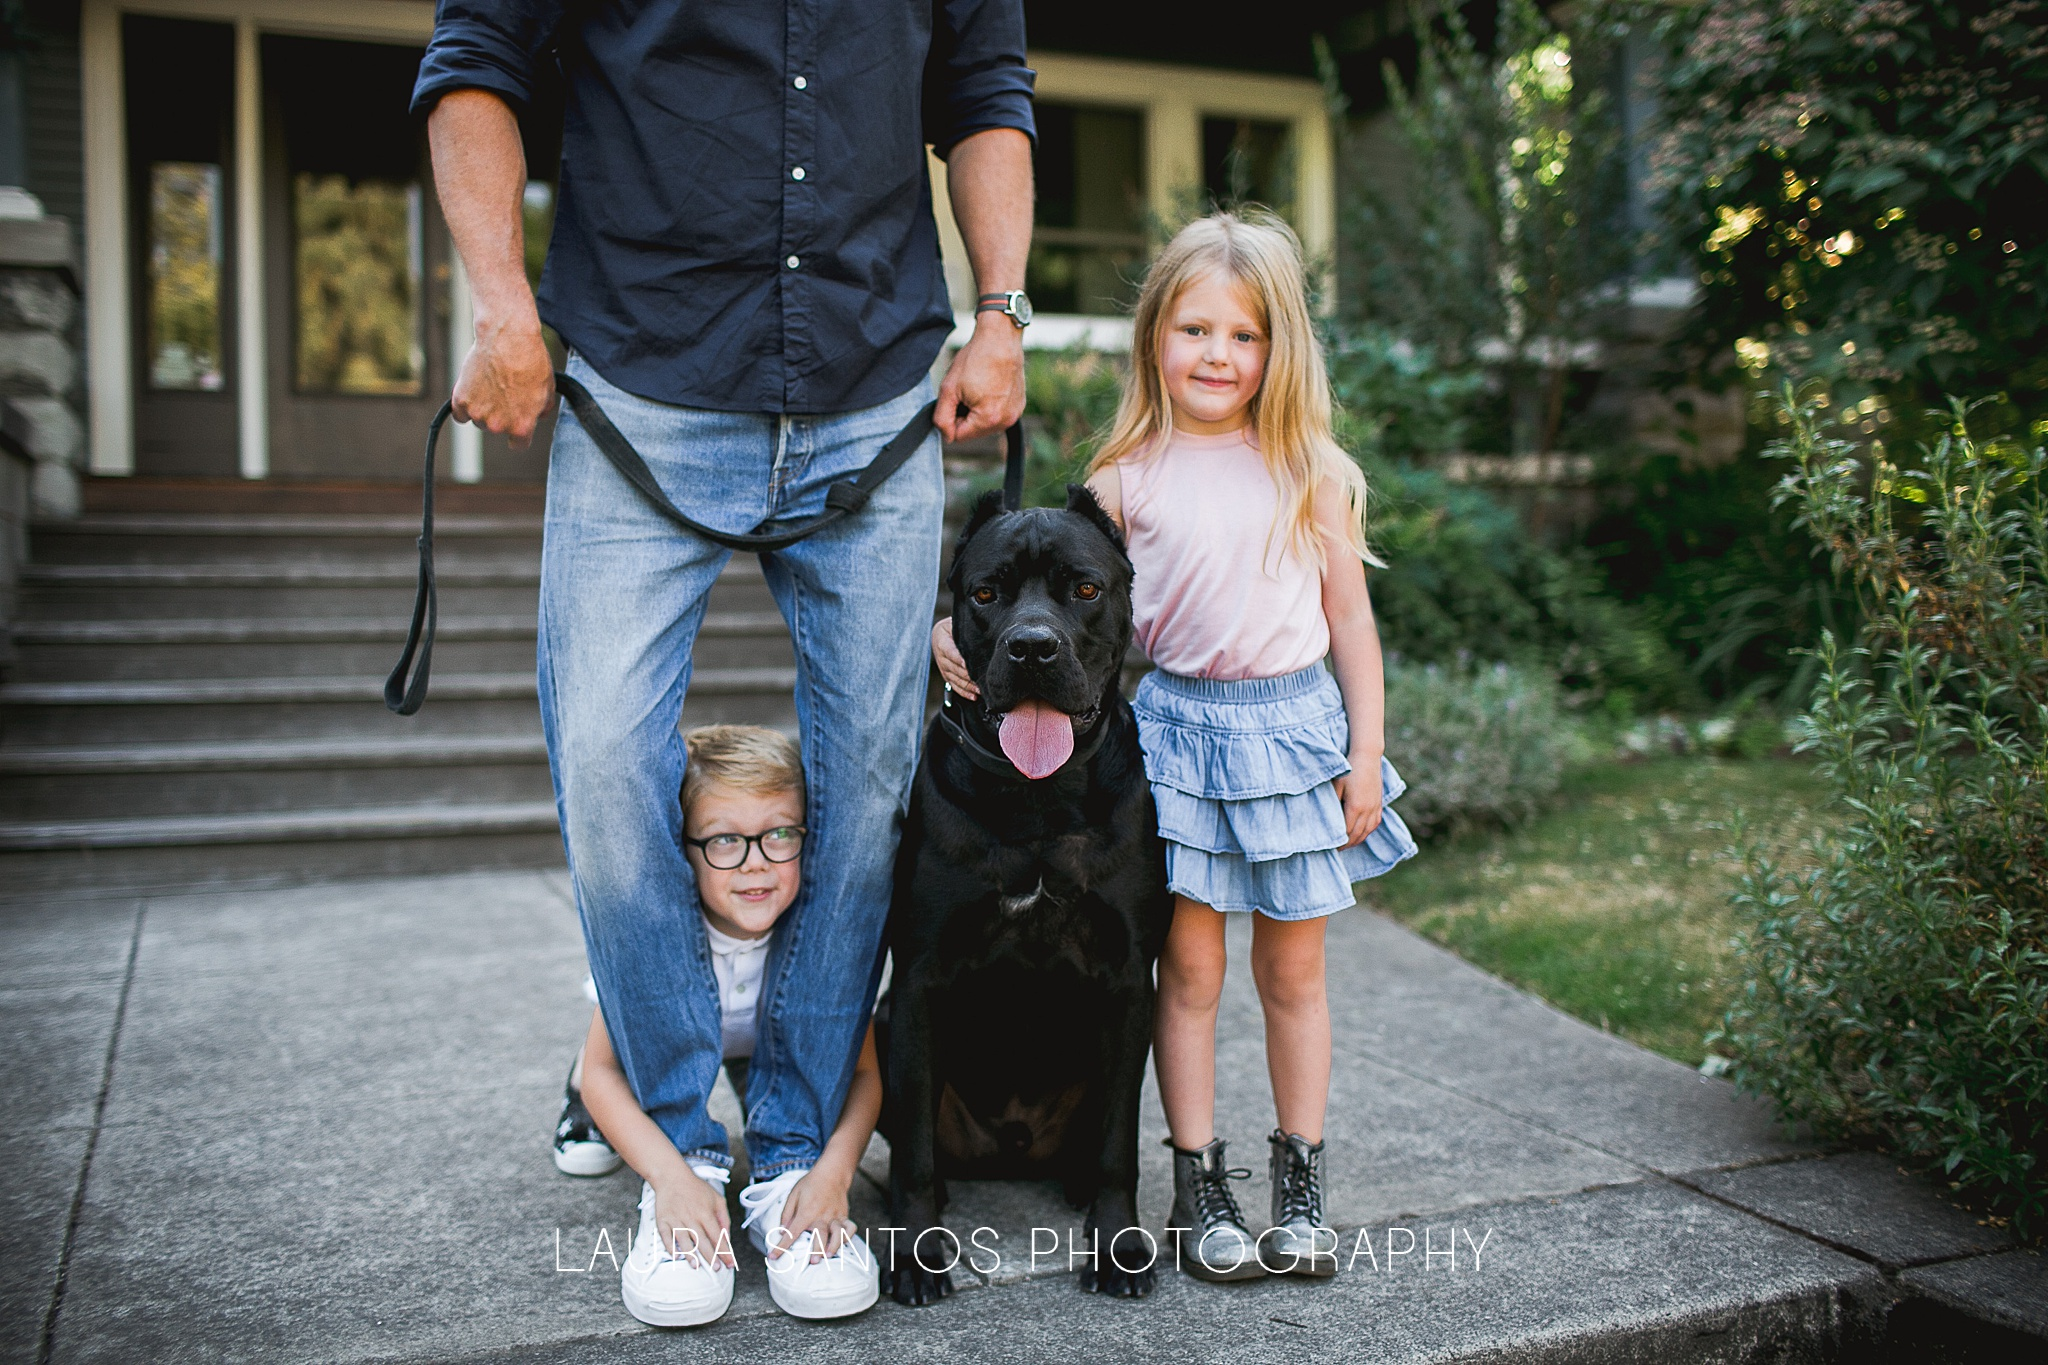 Laura Santos Photography Portland Oregon Family Photographer_1179.jpg